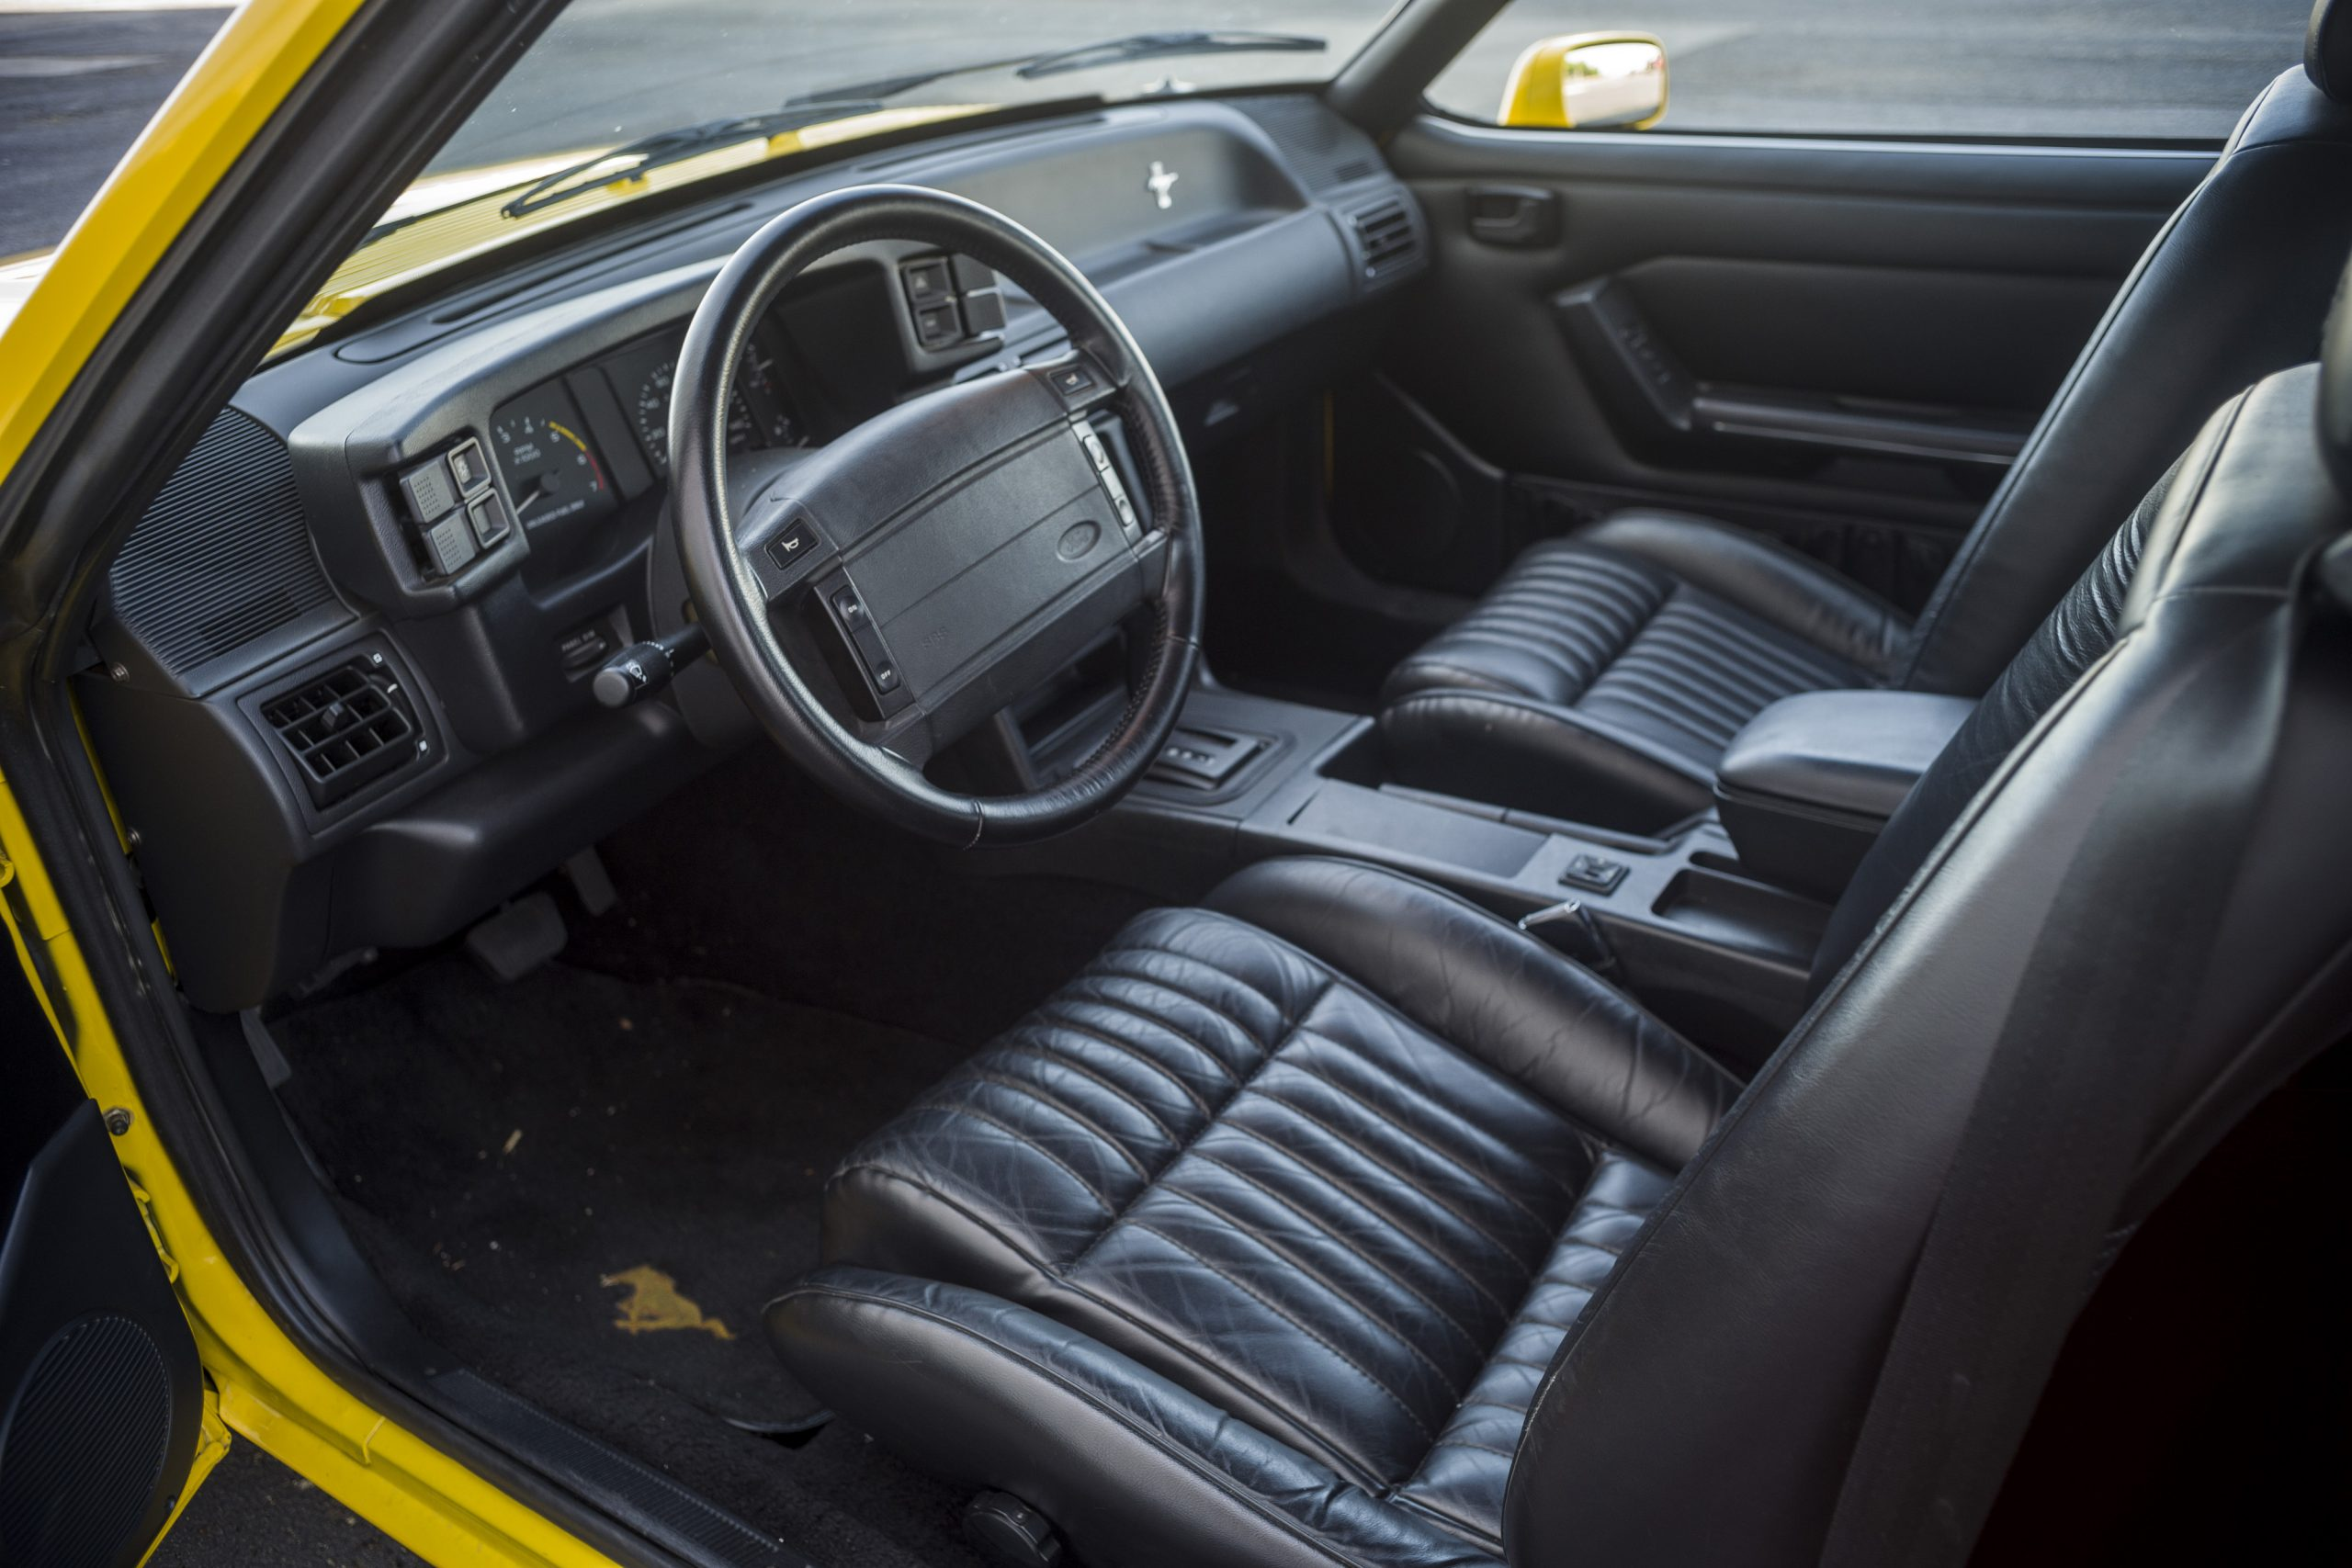 1993 Ford Mustang LX interior